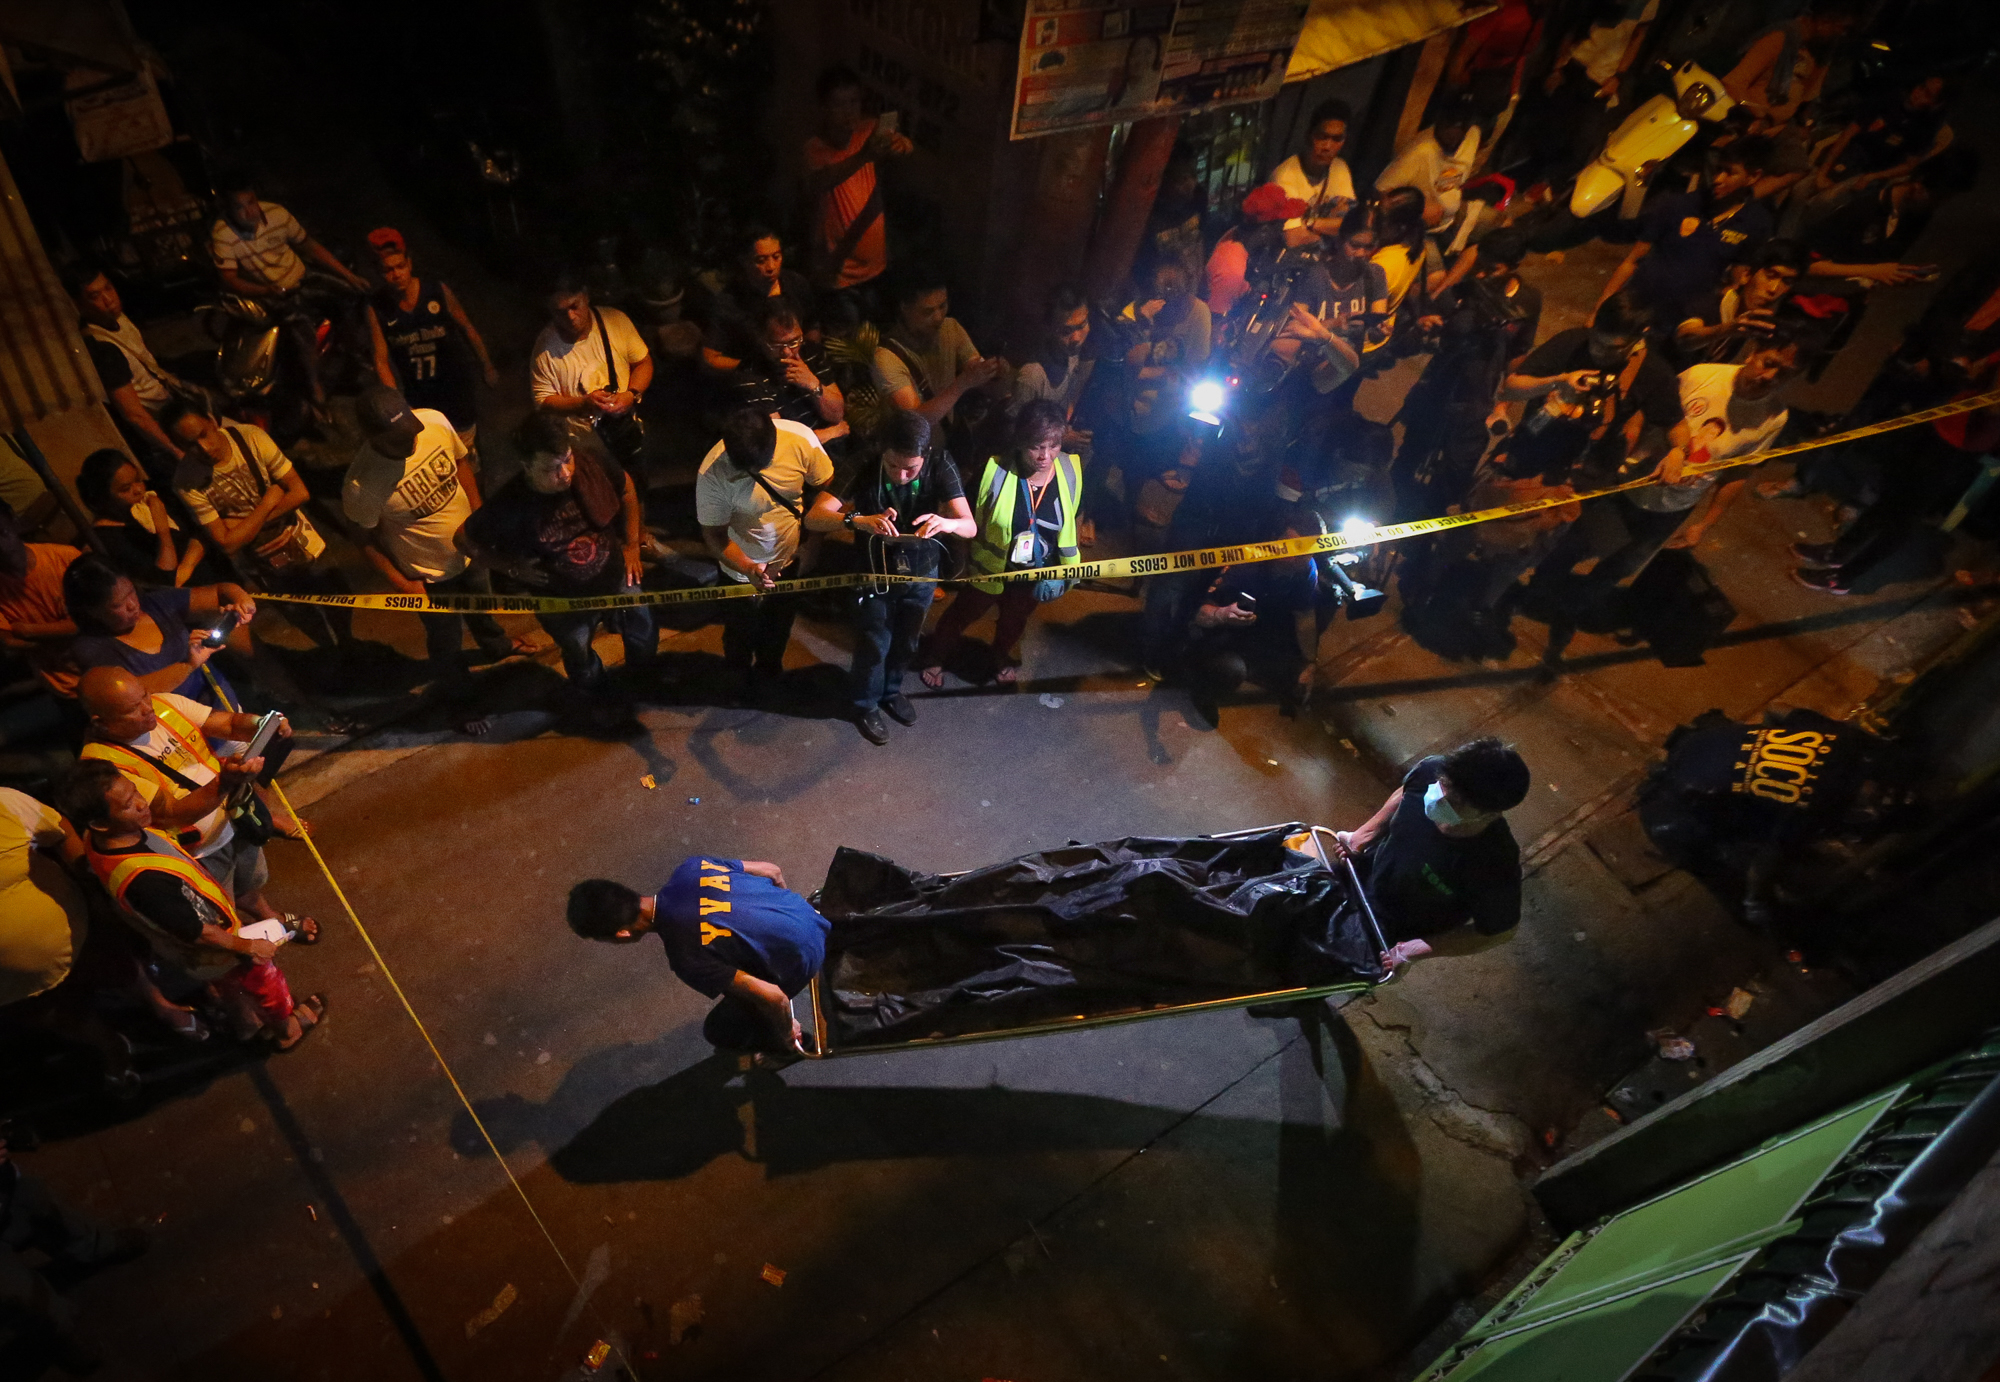 Coroners carry the body of one of three alleged drug pushers killed during a police buy-bust operation in Pandacan, Manila on July 15, 2016. The victims were later identified as Rodolfo Valdez, Ryan Da Silva and Cesar Blanco.